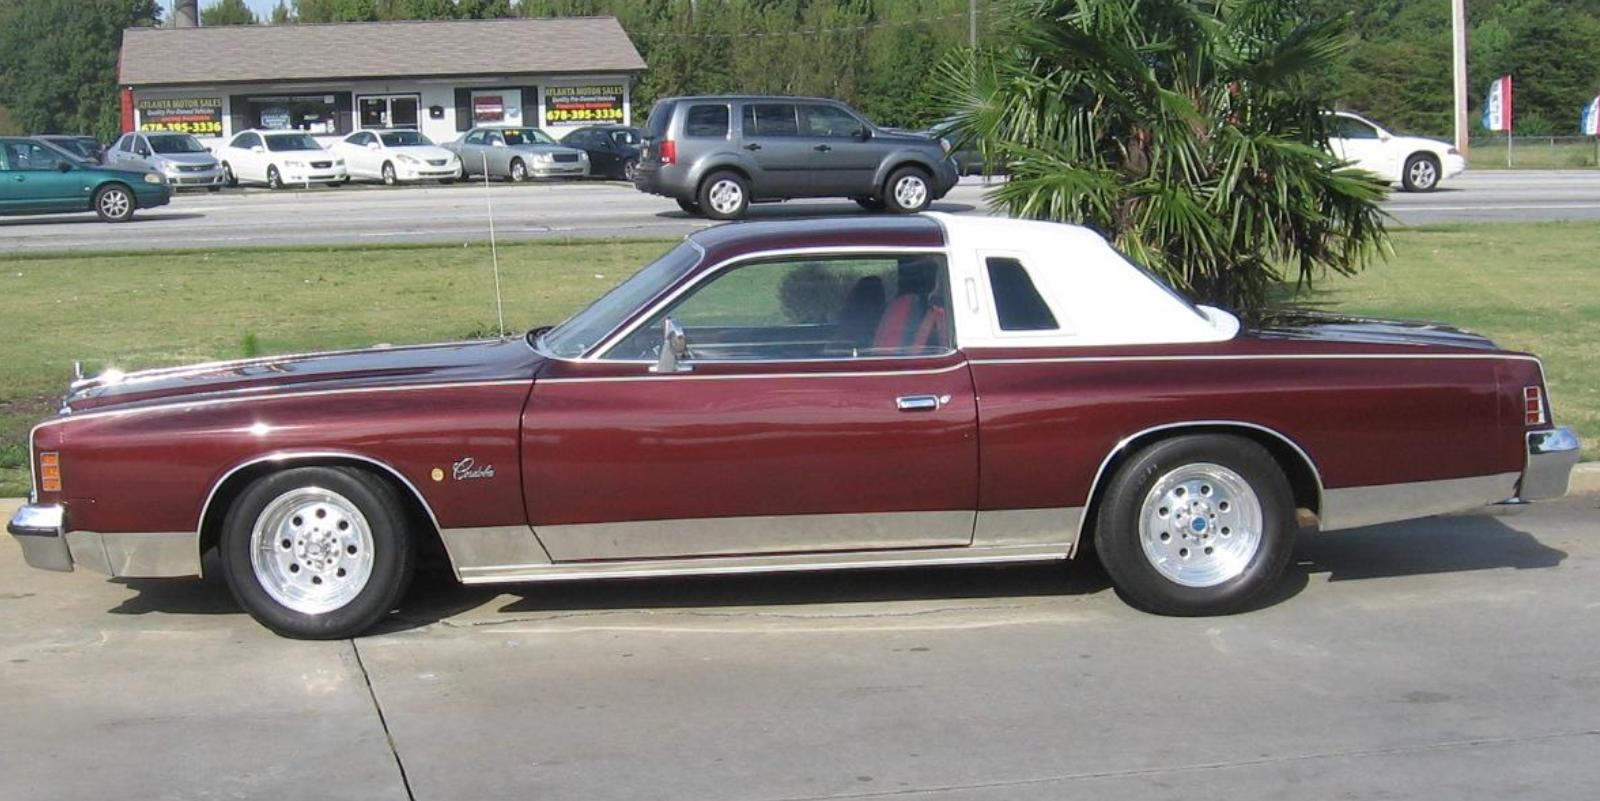 jb42996 1977 Chrysler Cordoba